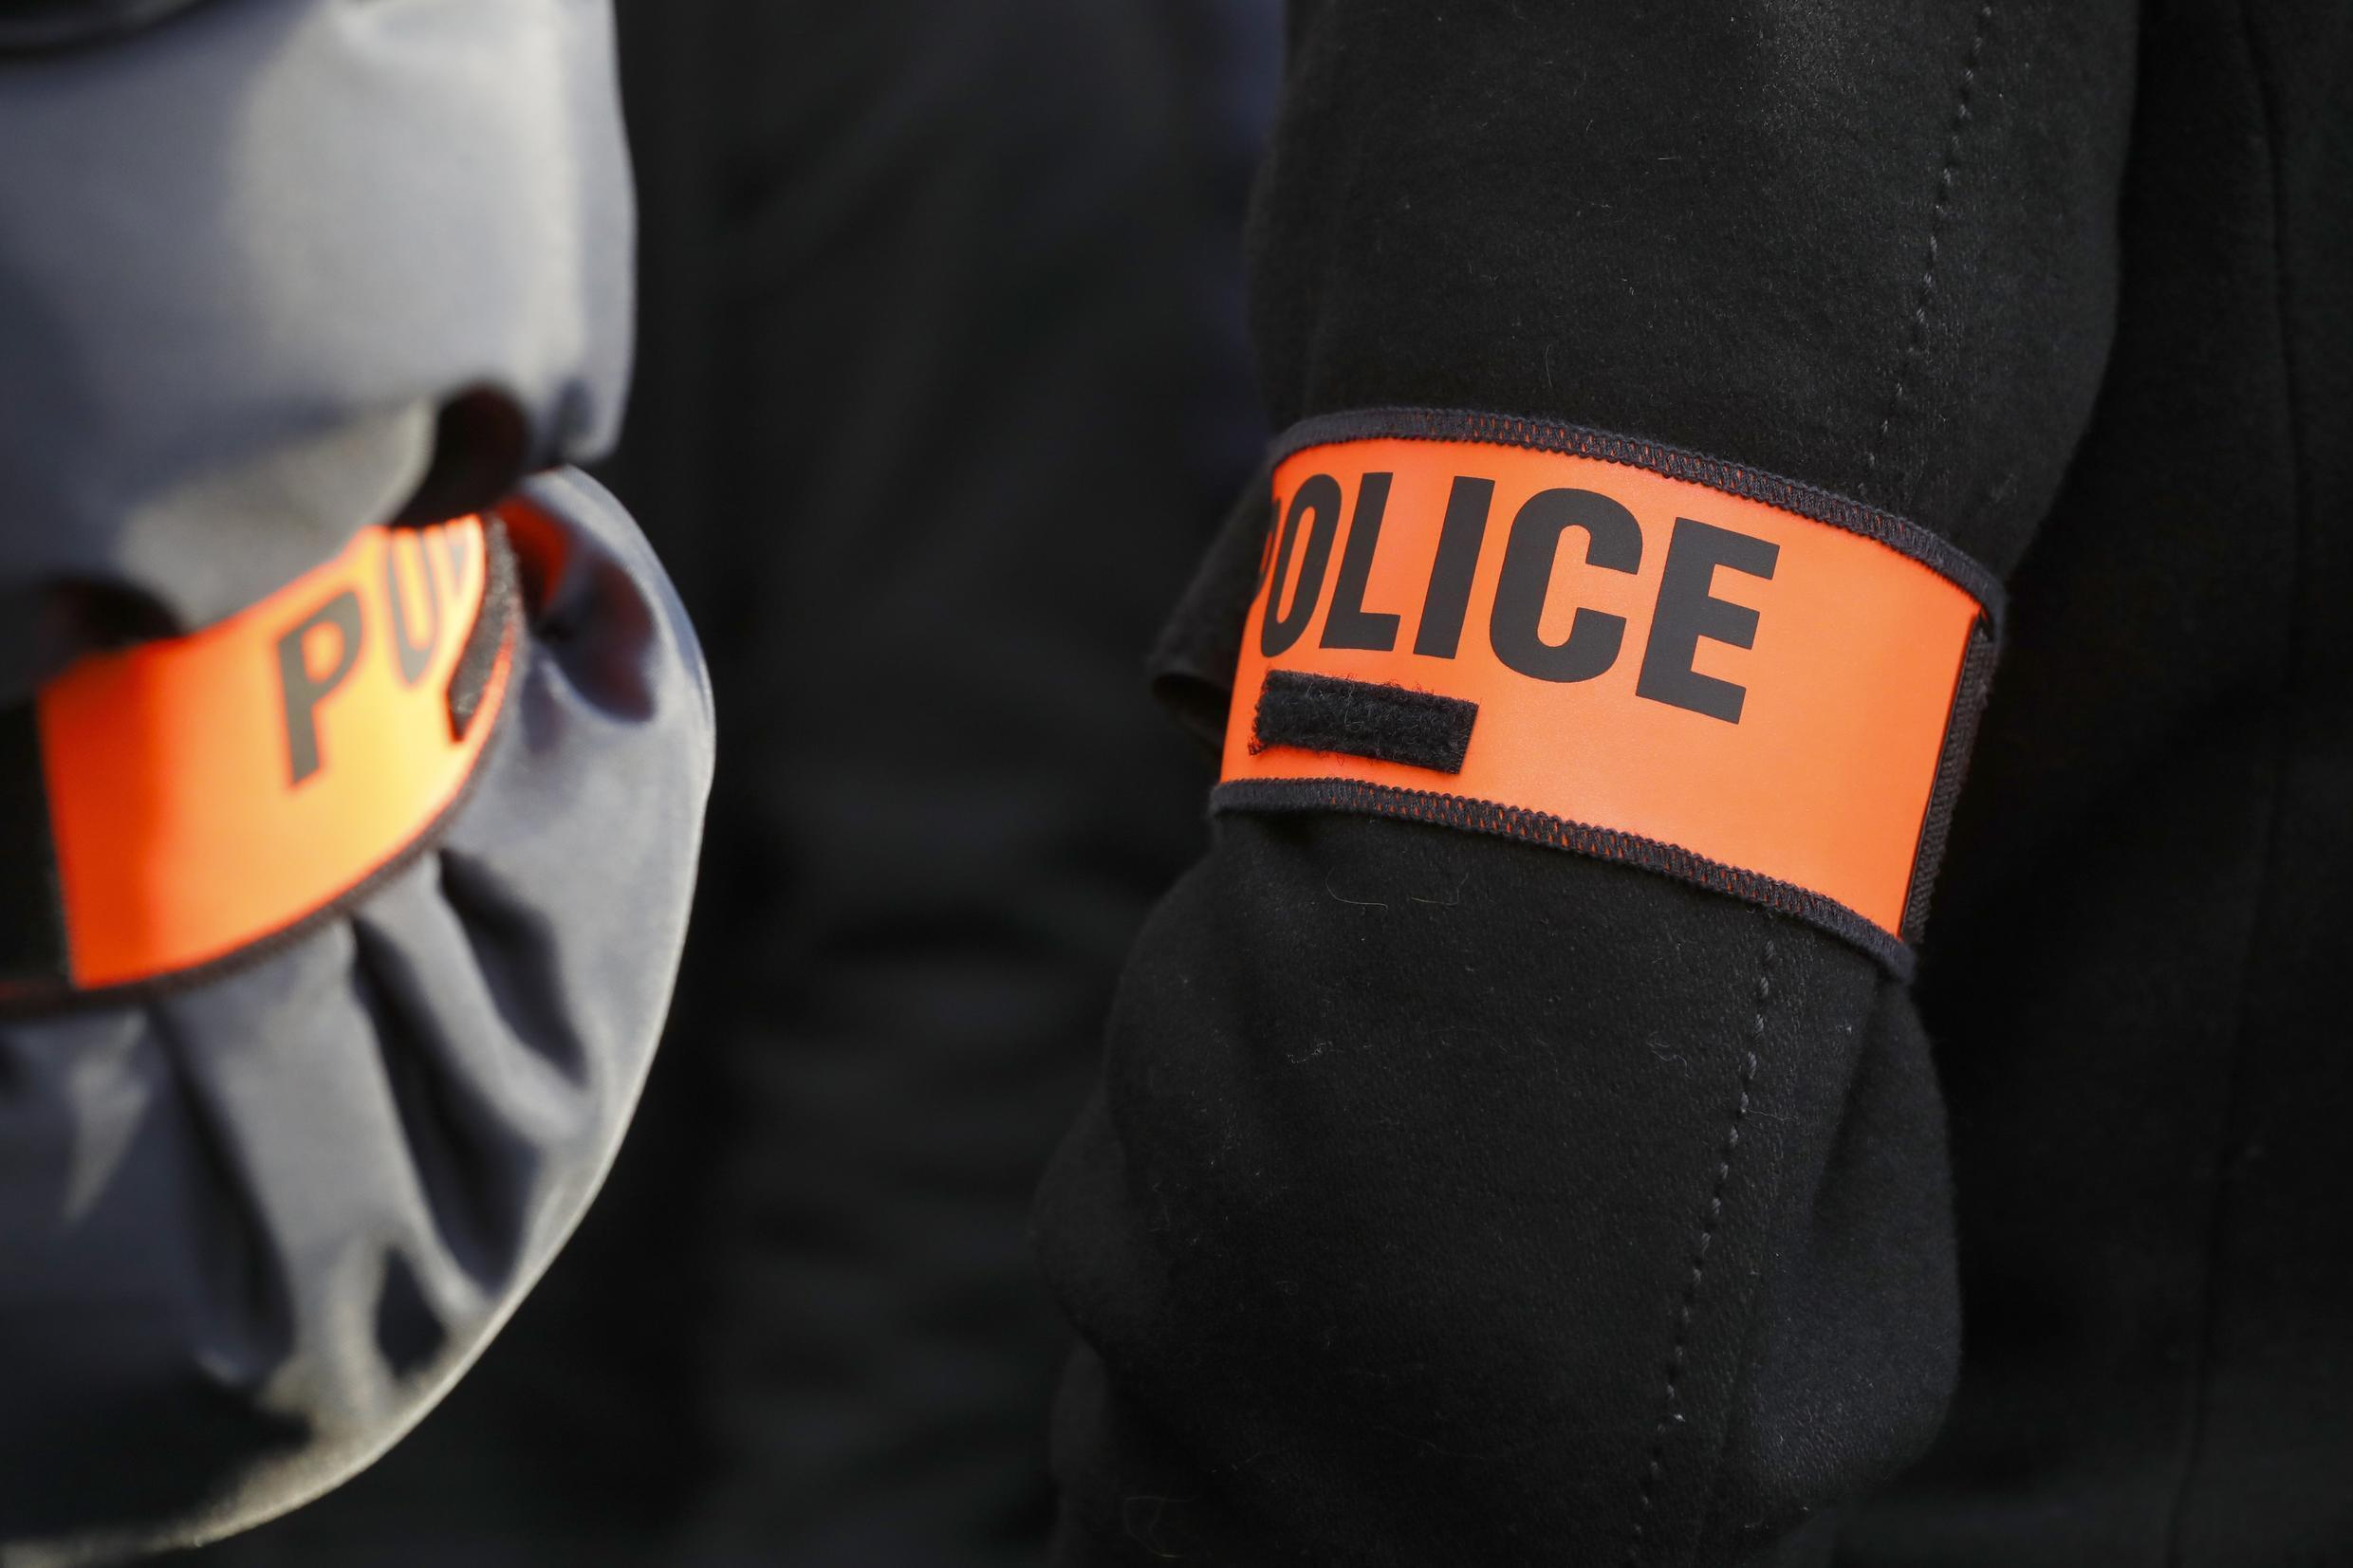 A video clip of alleged racist behaviour by police officers in the Ile-Saint-Denis area near Paris has sparked an investigation by France's police watchdog.